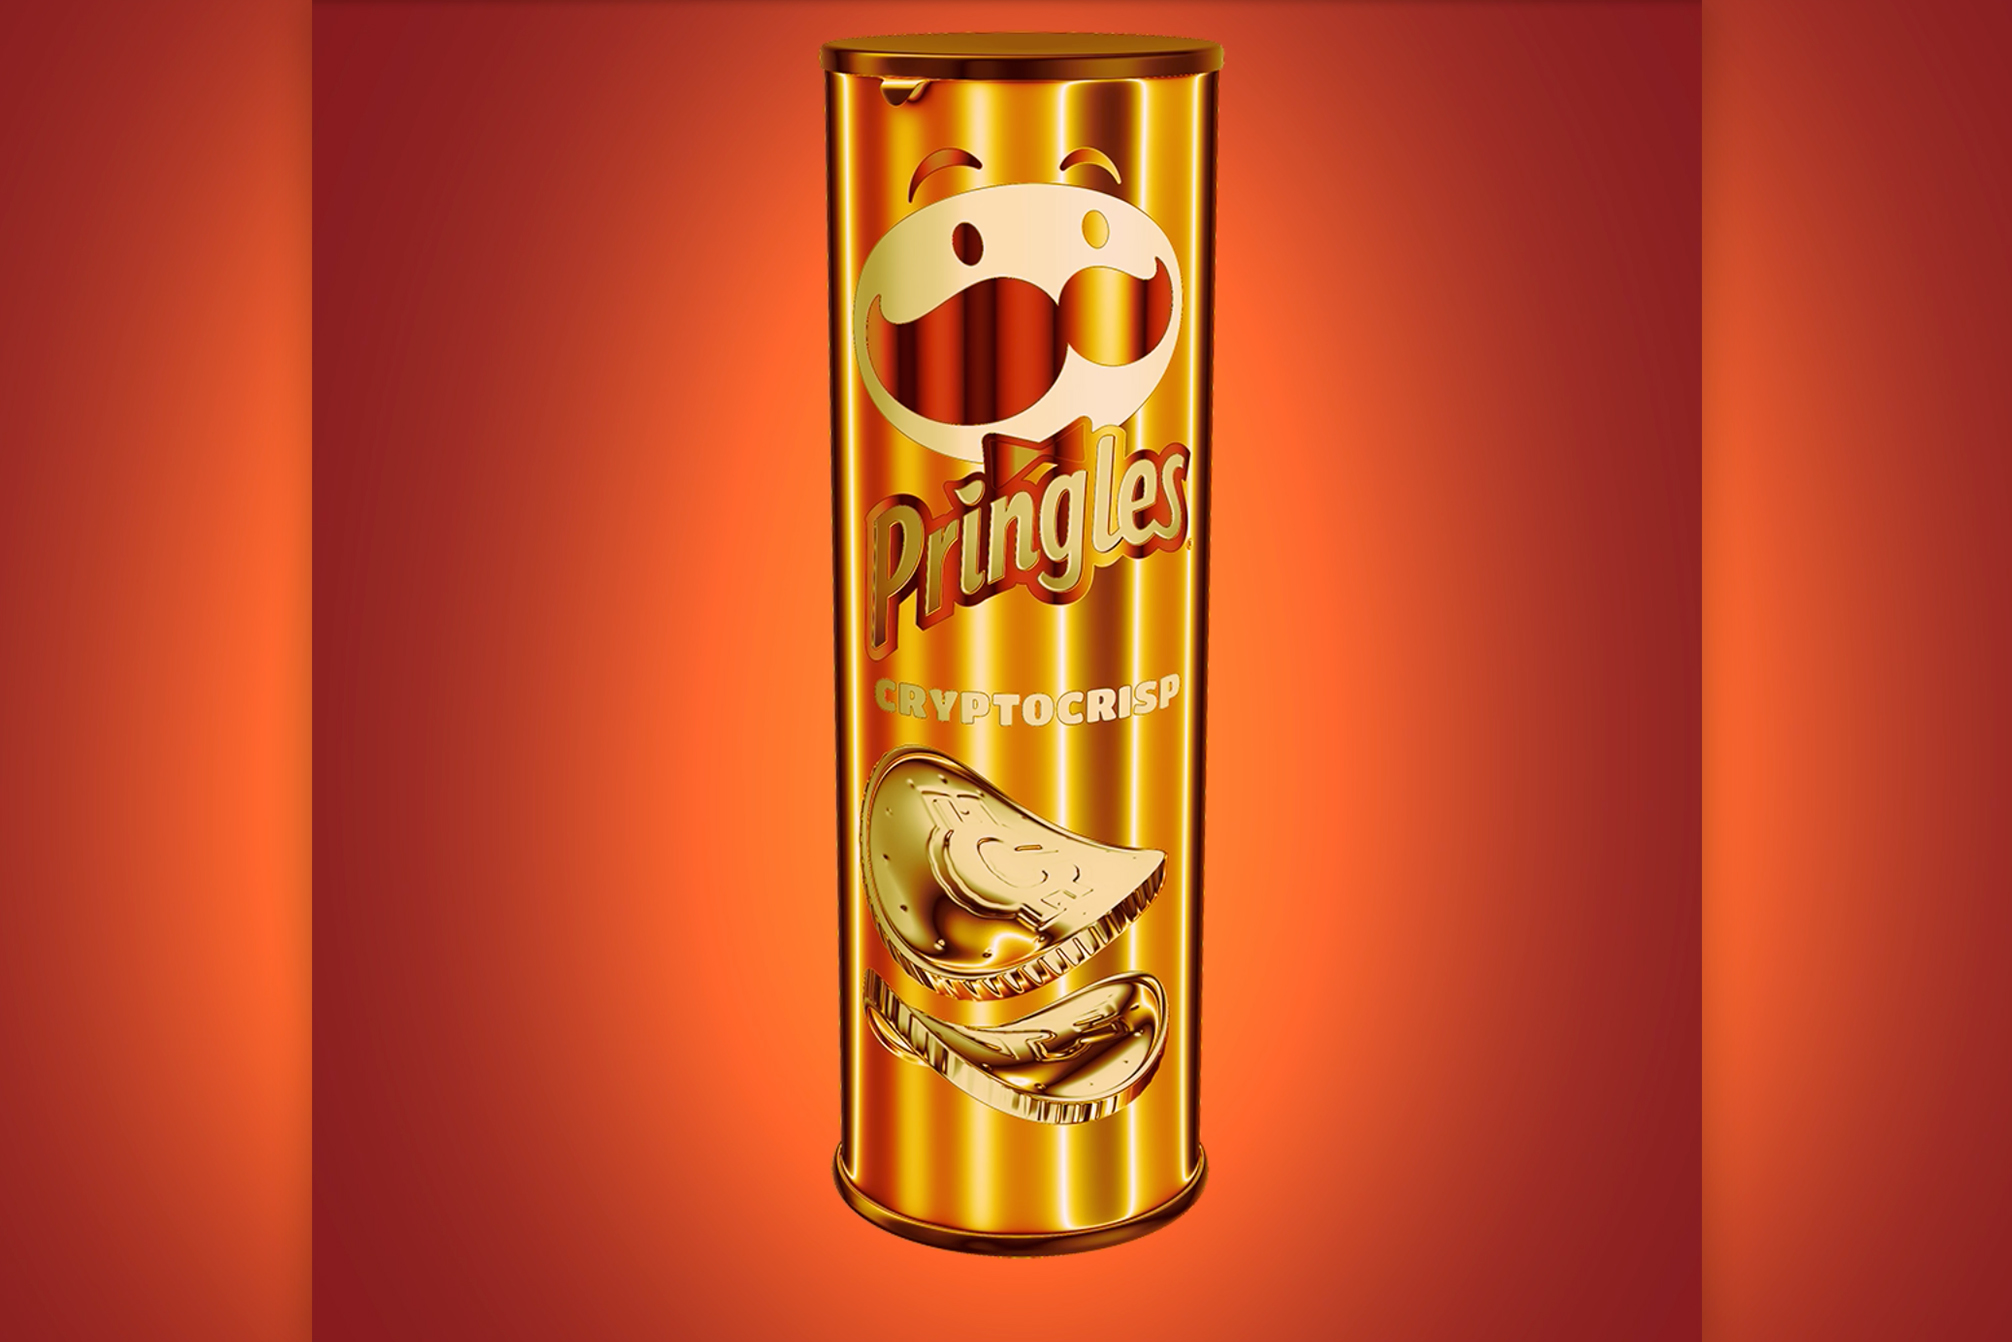 How an ad collector paid $2 for a Pringles NFT and sold it for close to $1,500